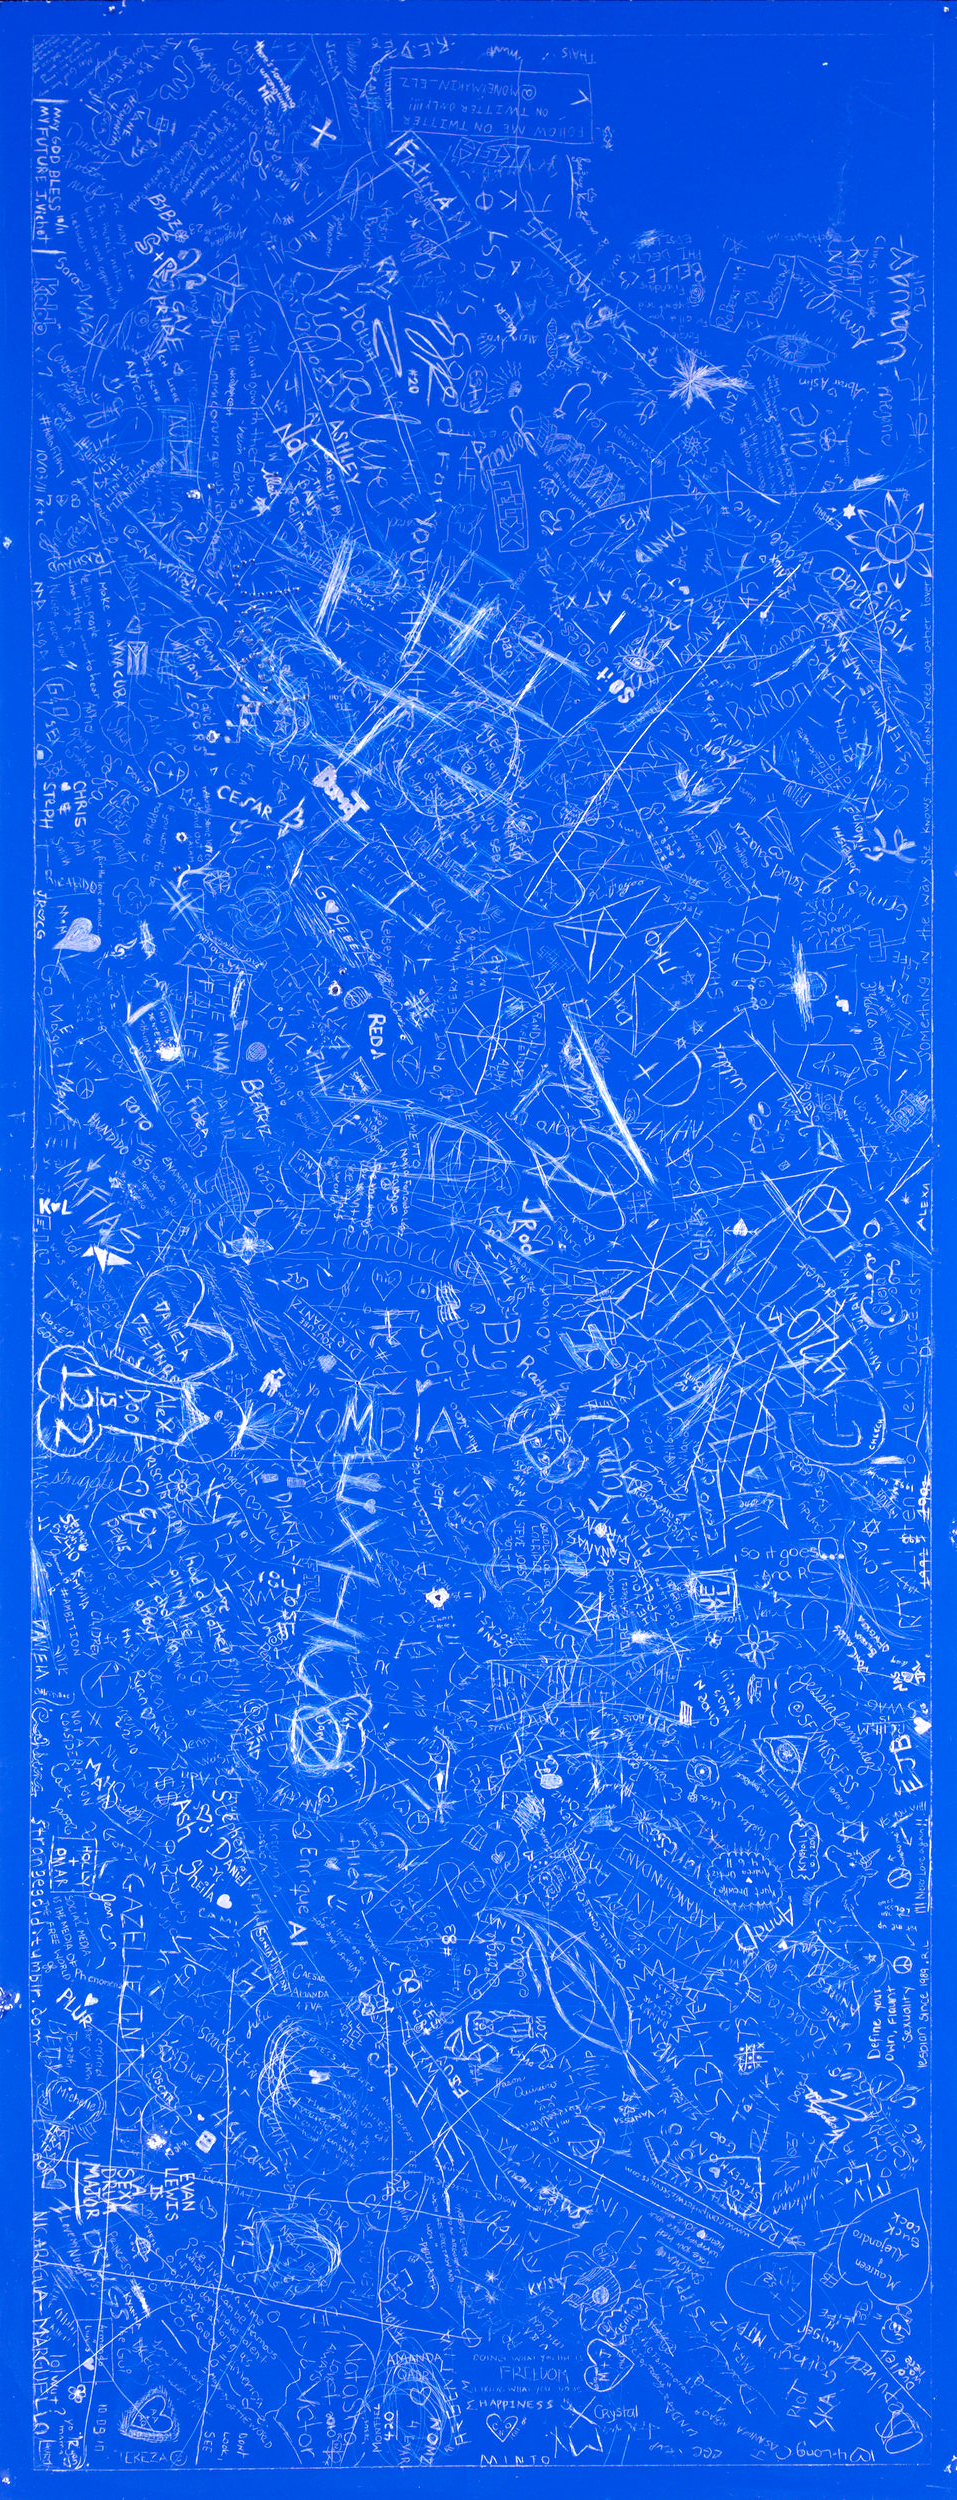 Signature, FIU-16 (Florida International University), 2012Carved and incised painted aluminum panelCrowd sourced group drawing60 x 48 inches -